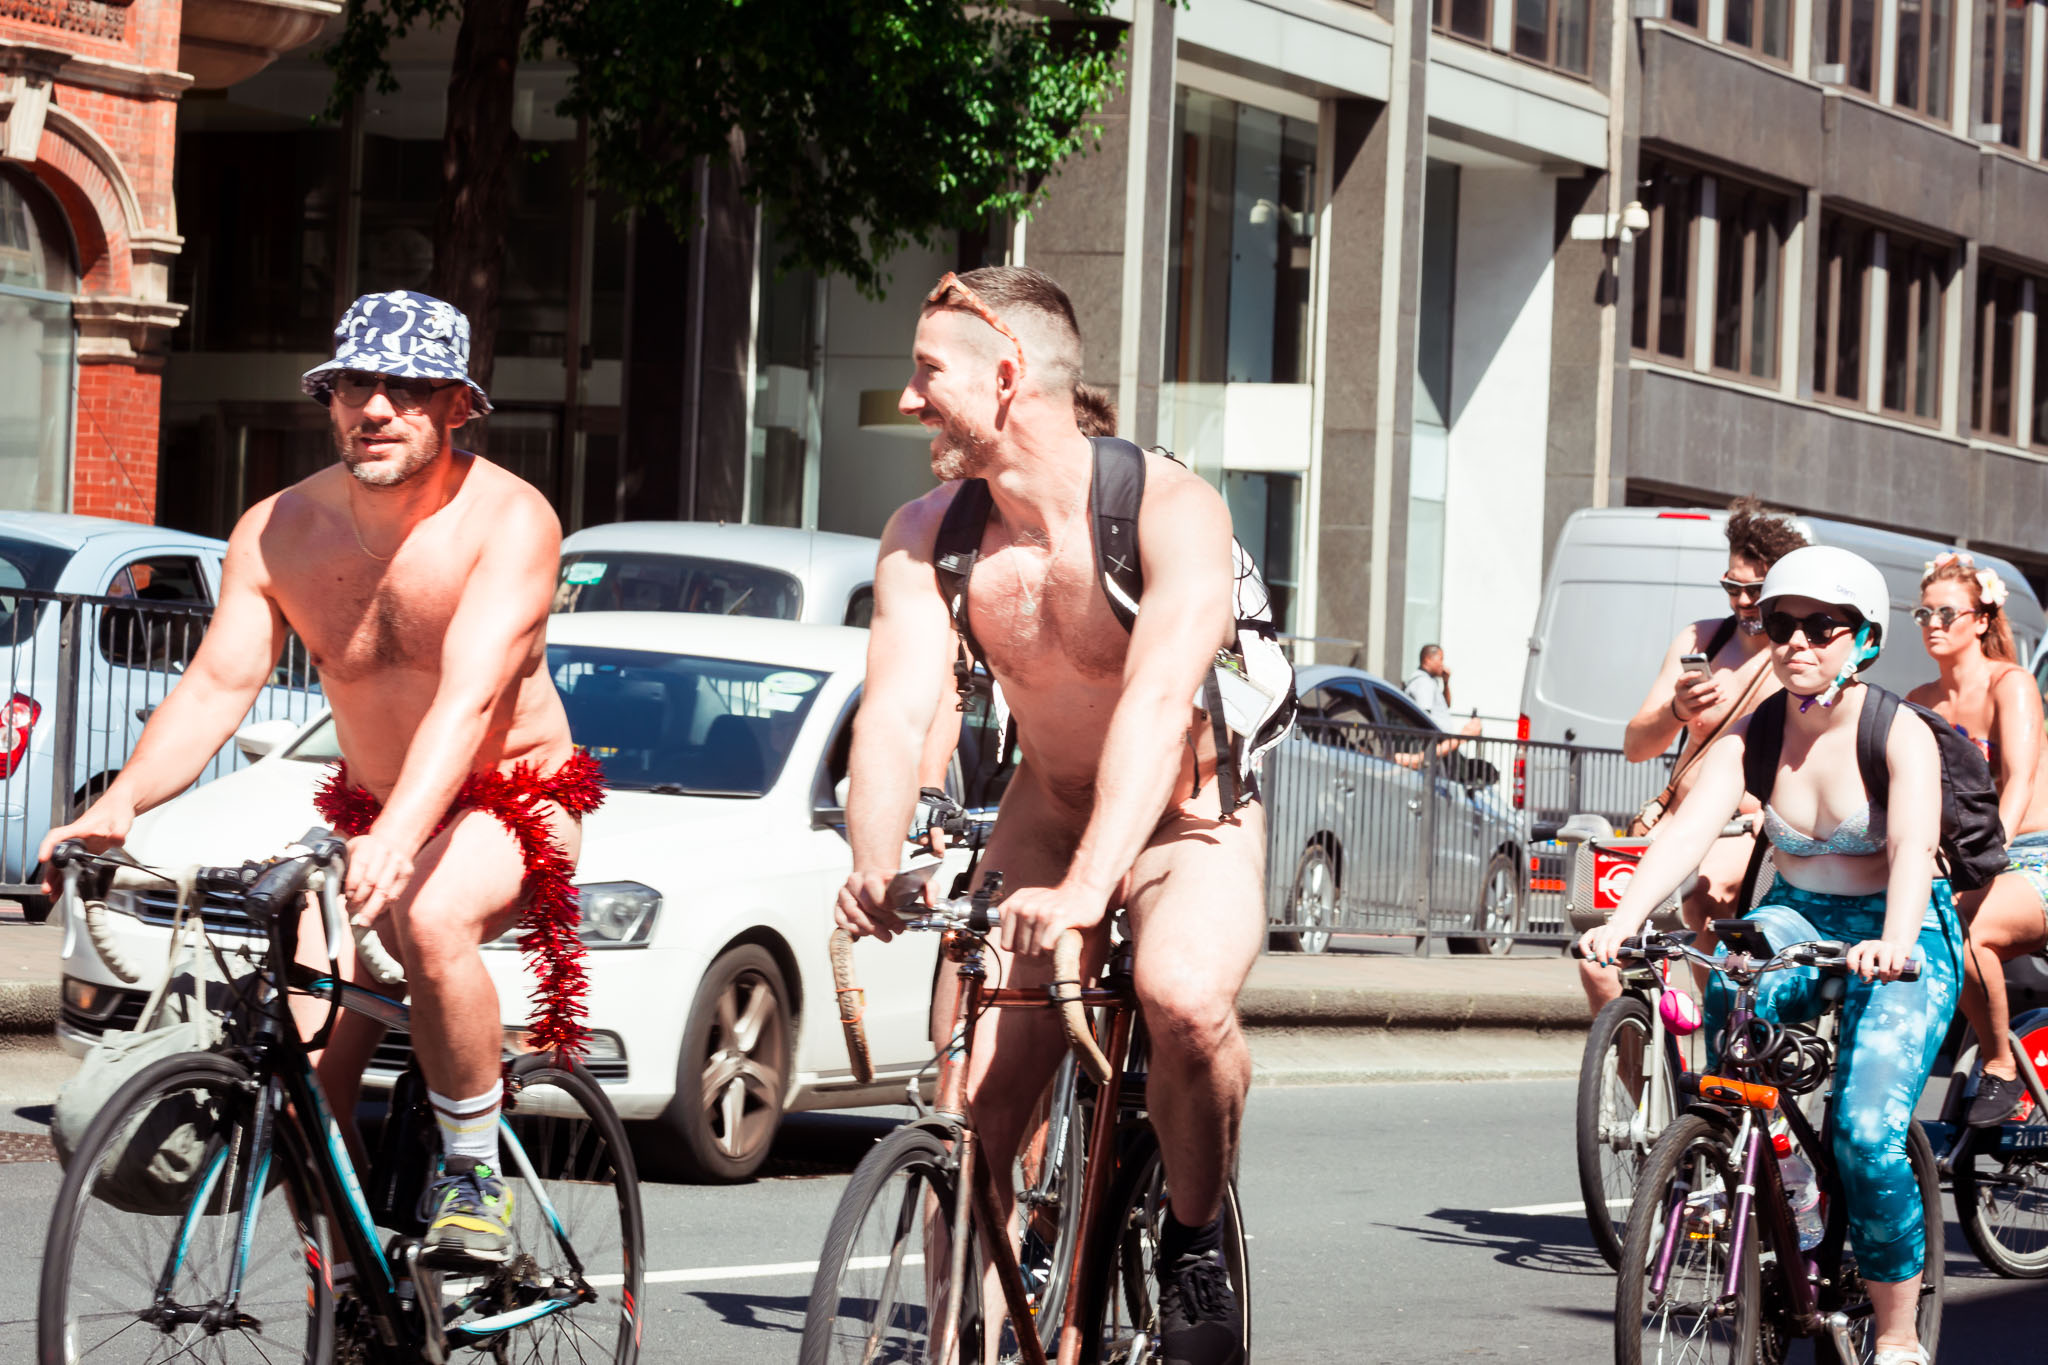 _MG_1668 Naked Bike Ride London 190617 by Alexander Ivanov Photography for web